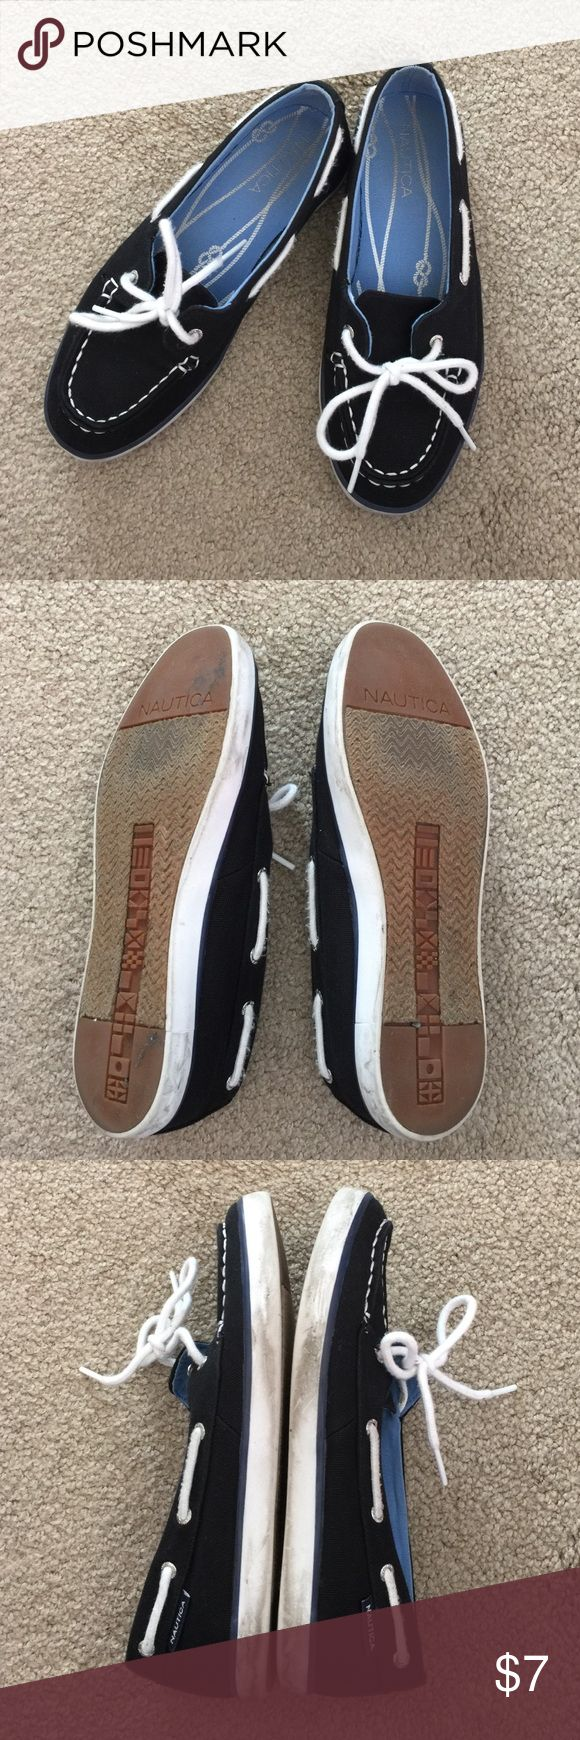 Used Náutica black boat shoes size 5 Used shoes with plenty of life left. I do custom bundles just ask. Making room in my closet so really trying to get rid of everything ASAP. Trying to pay my student loans so no trading right now. I'm willing to consider all offers. The more you buy the more I can discount. Nautica Shoes Flats & Loafers